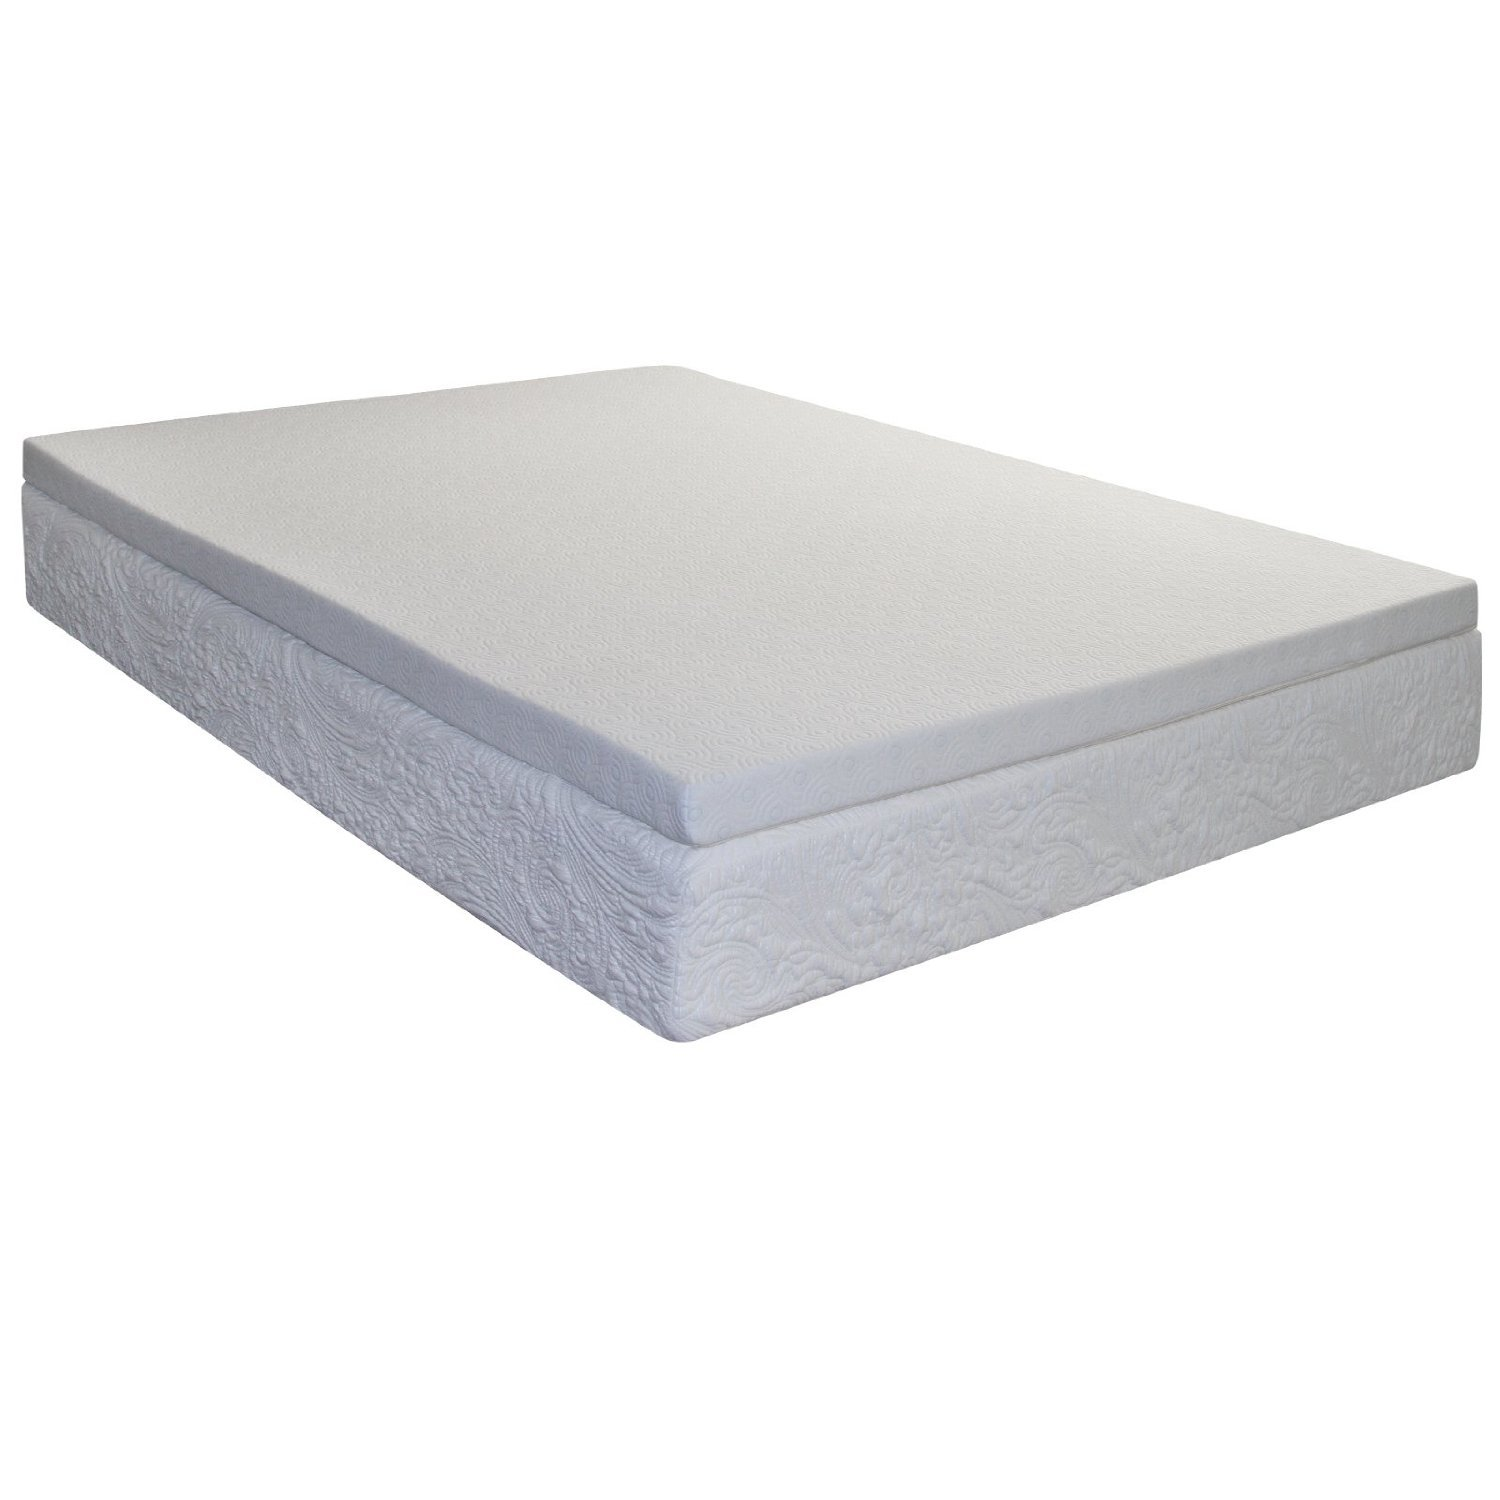 Spring And Memory Foam Mattress Spring Coil Mattress Topper Queen Size With Cool Gel